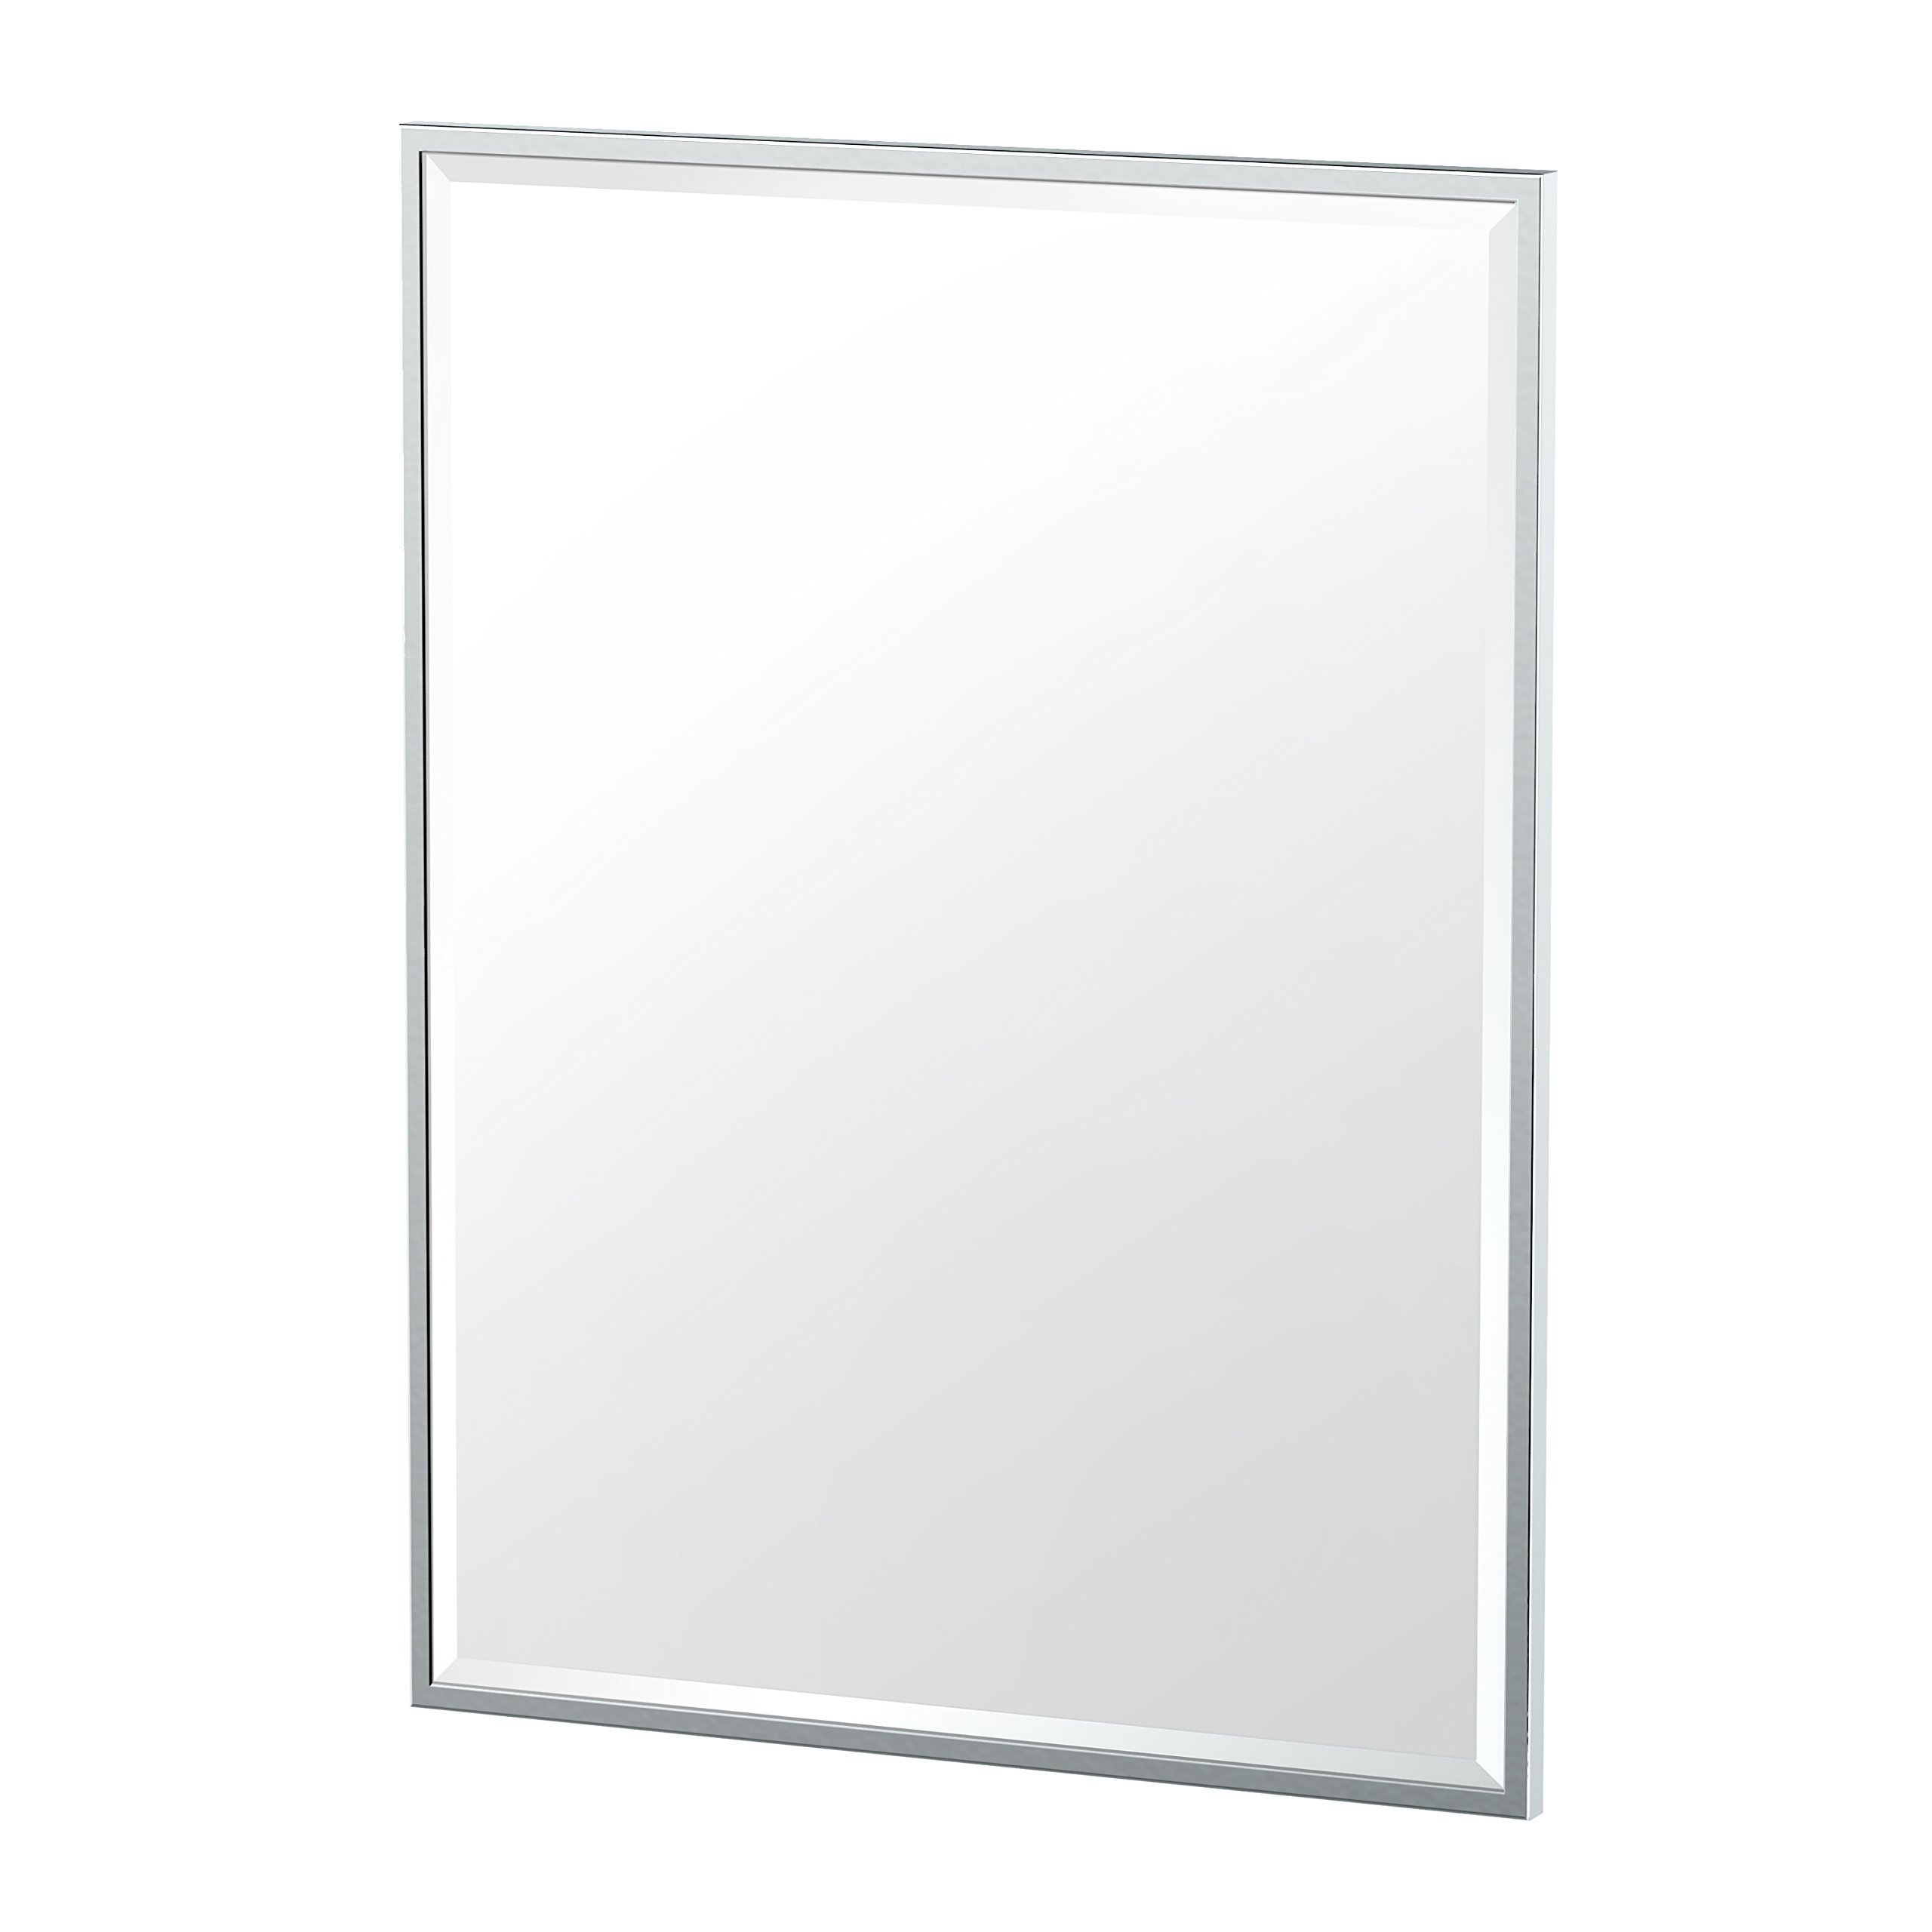 Gatco 1822 Flush Mount Framed Rectangle Mirror, 32.5'', Chrome by Gatco